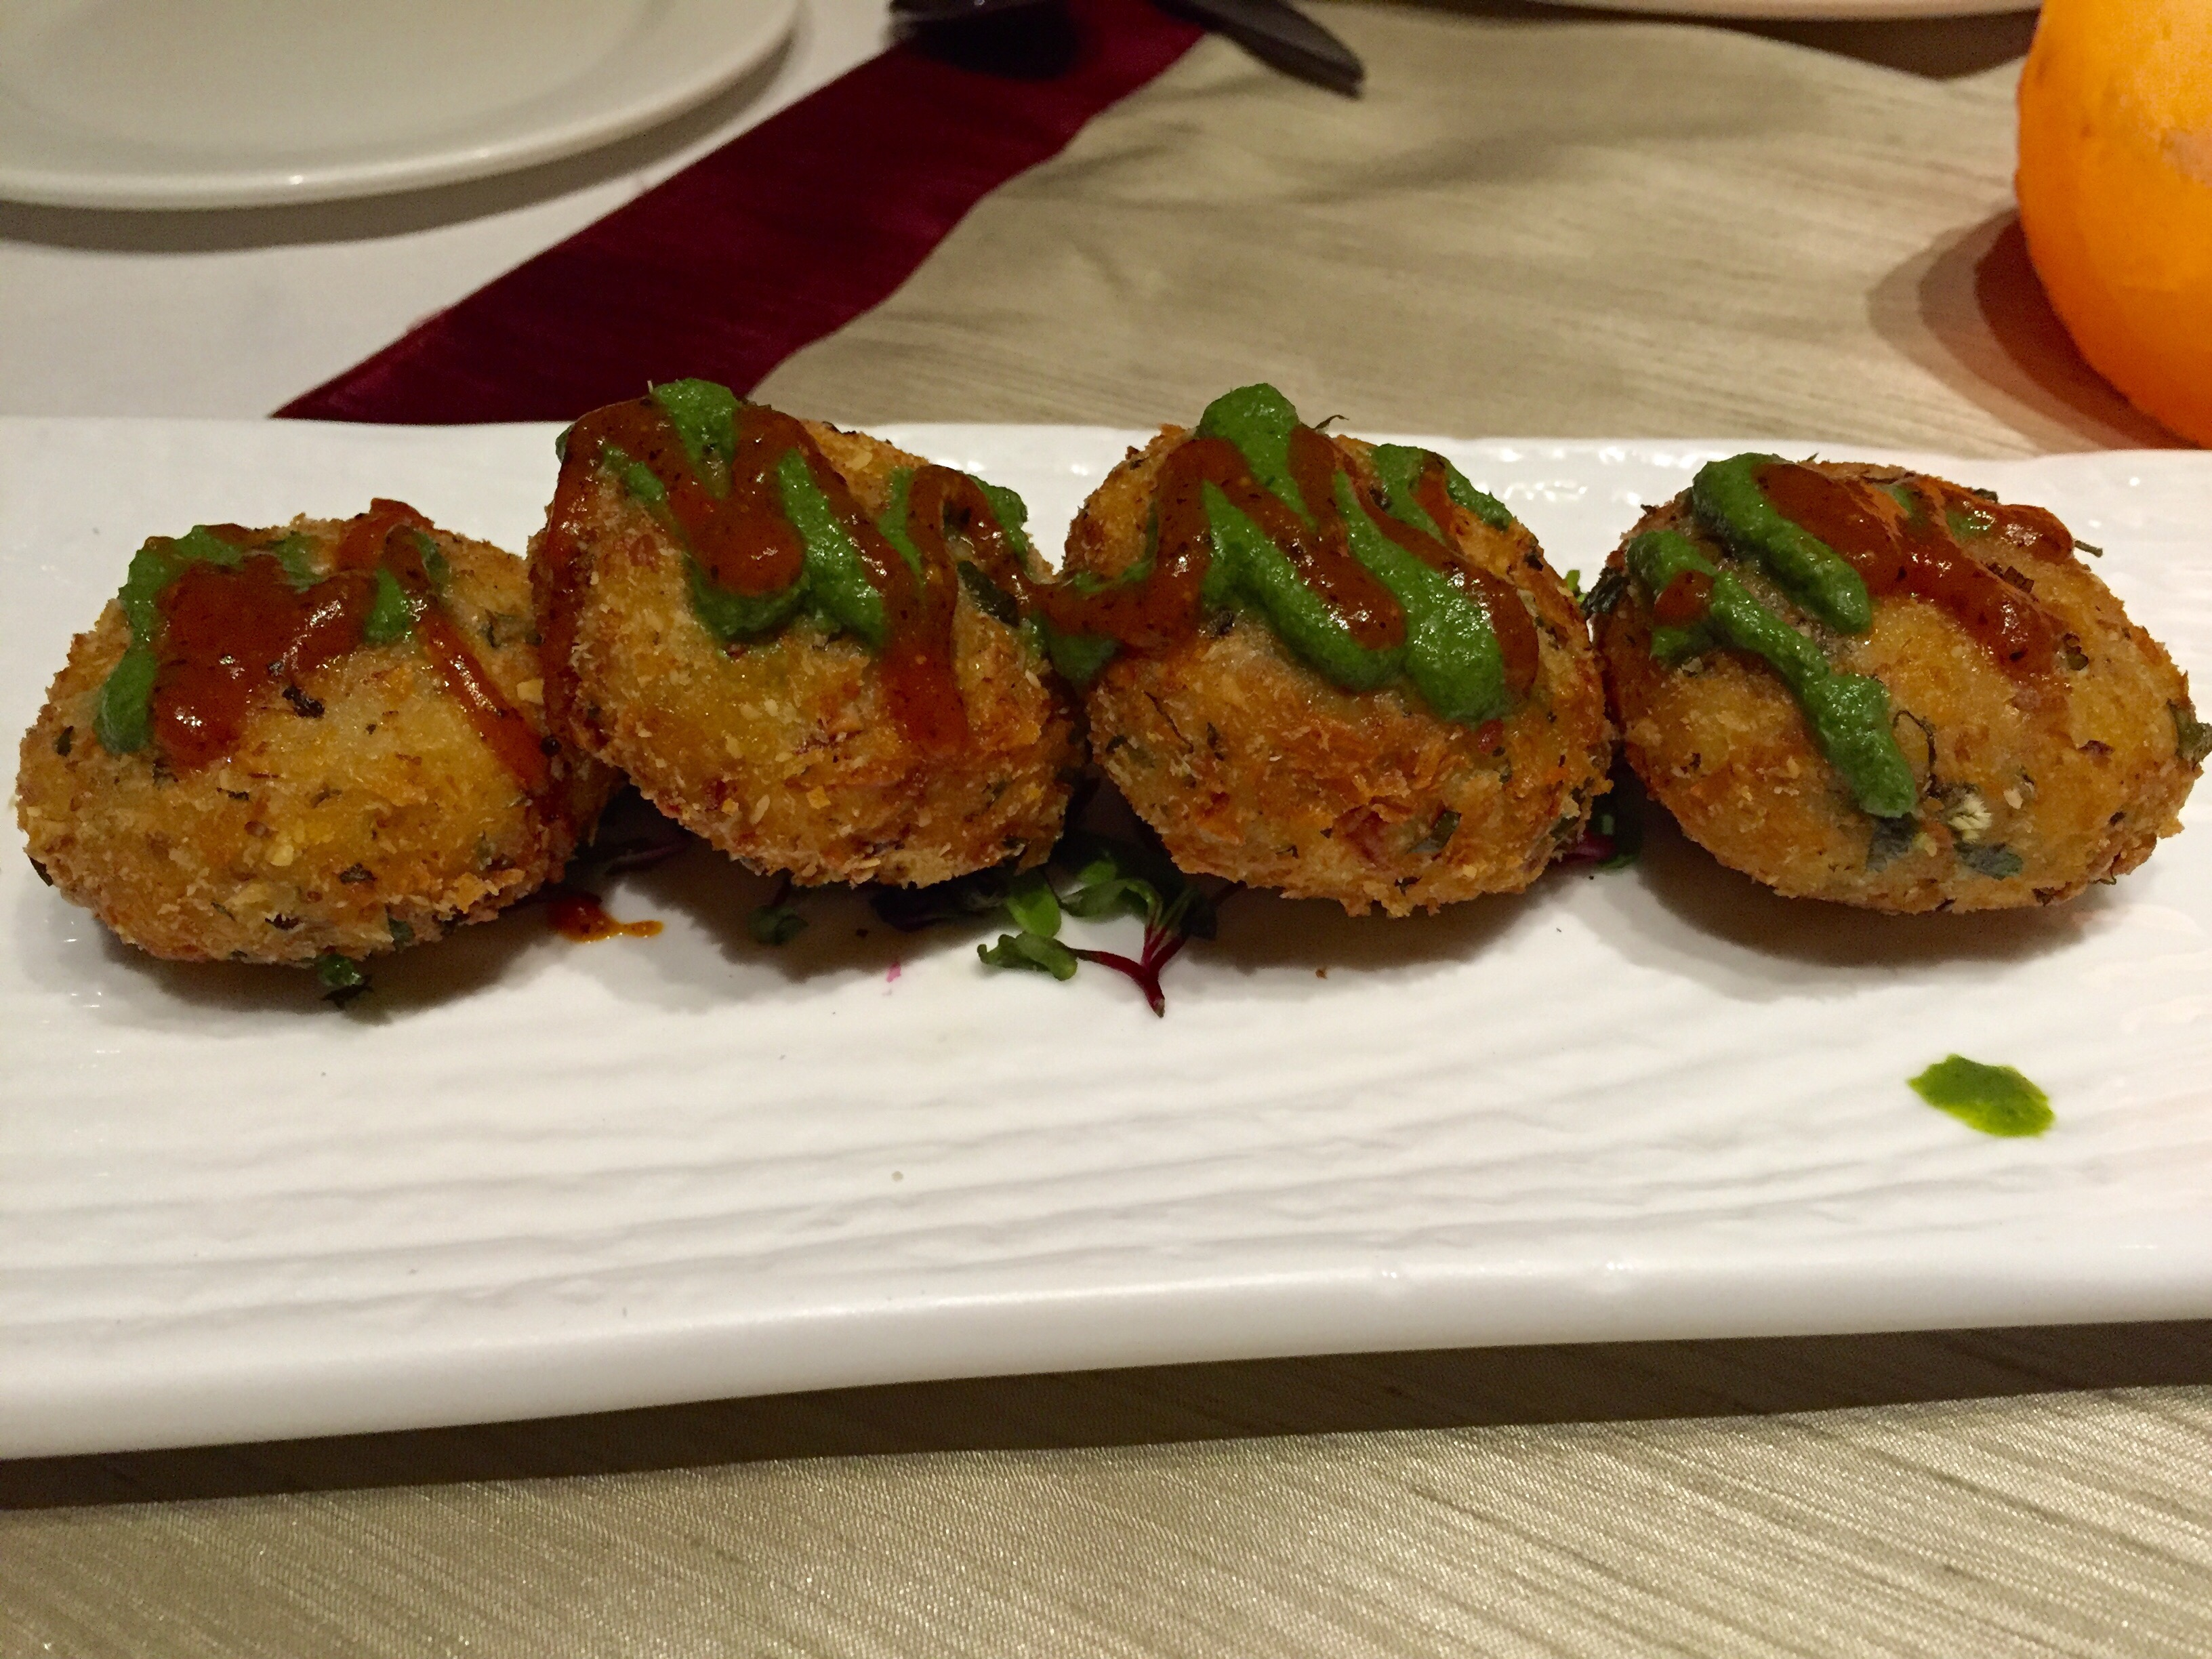 Masala Library: Delightfully exquisite plating of delicious Indian